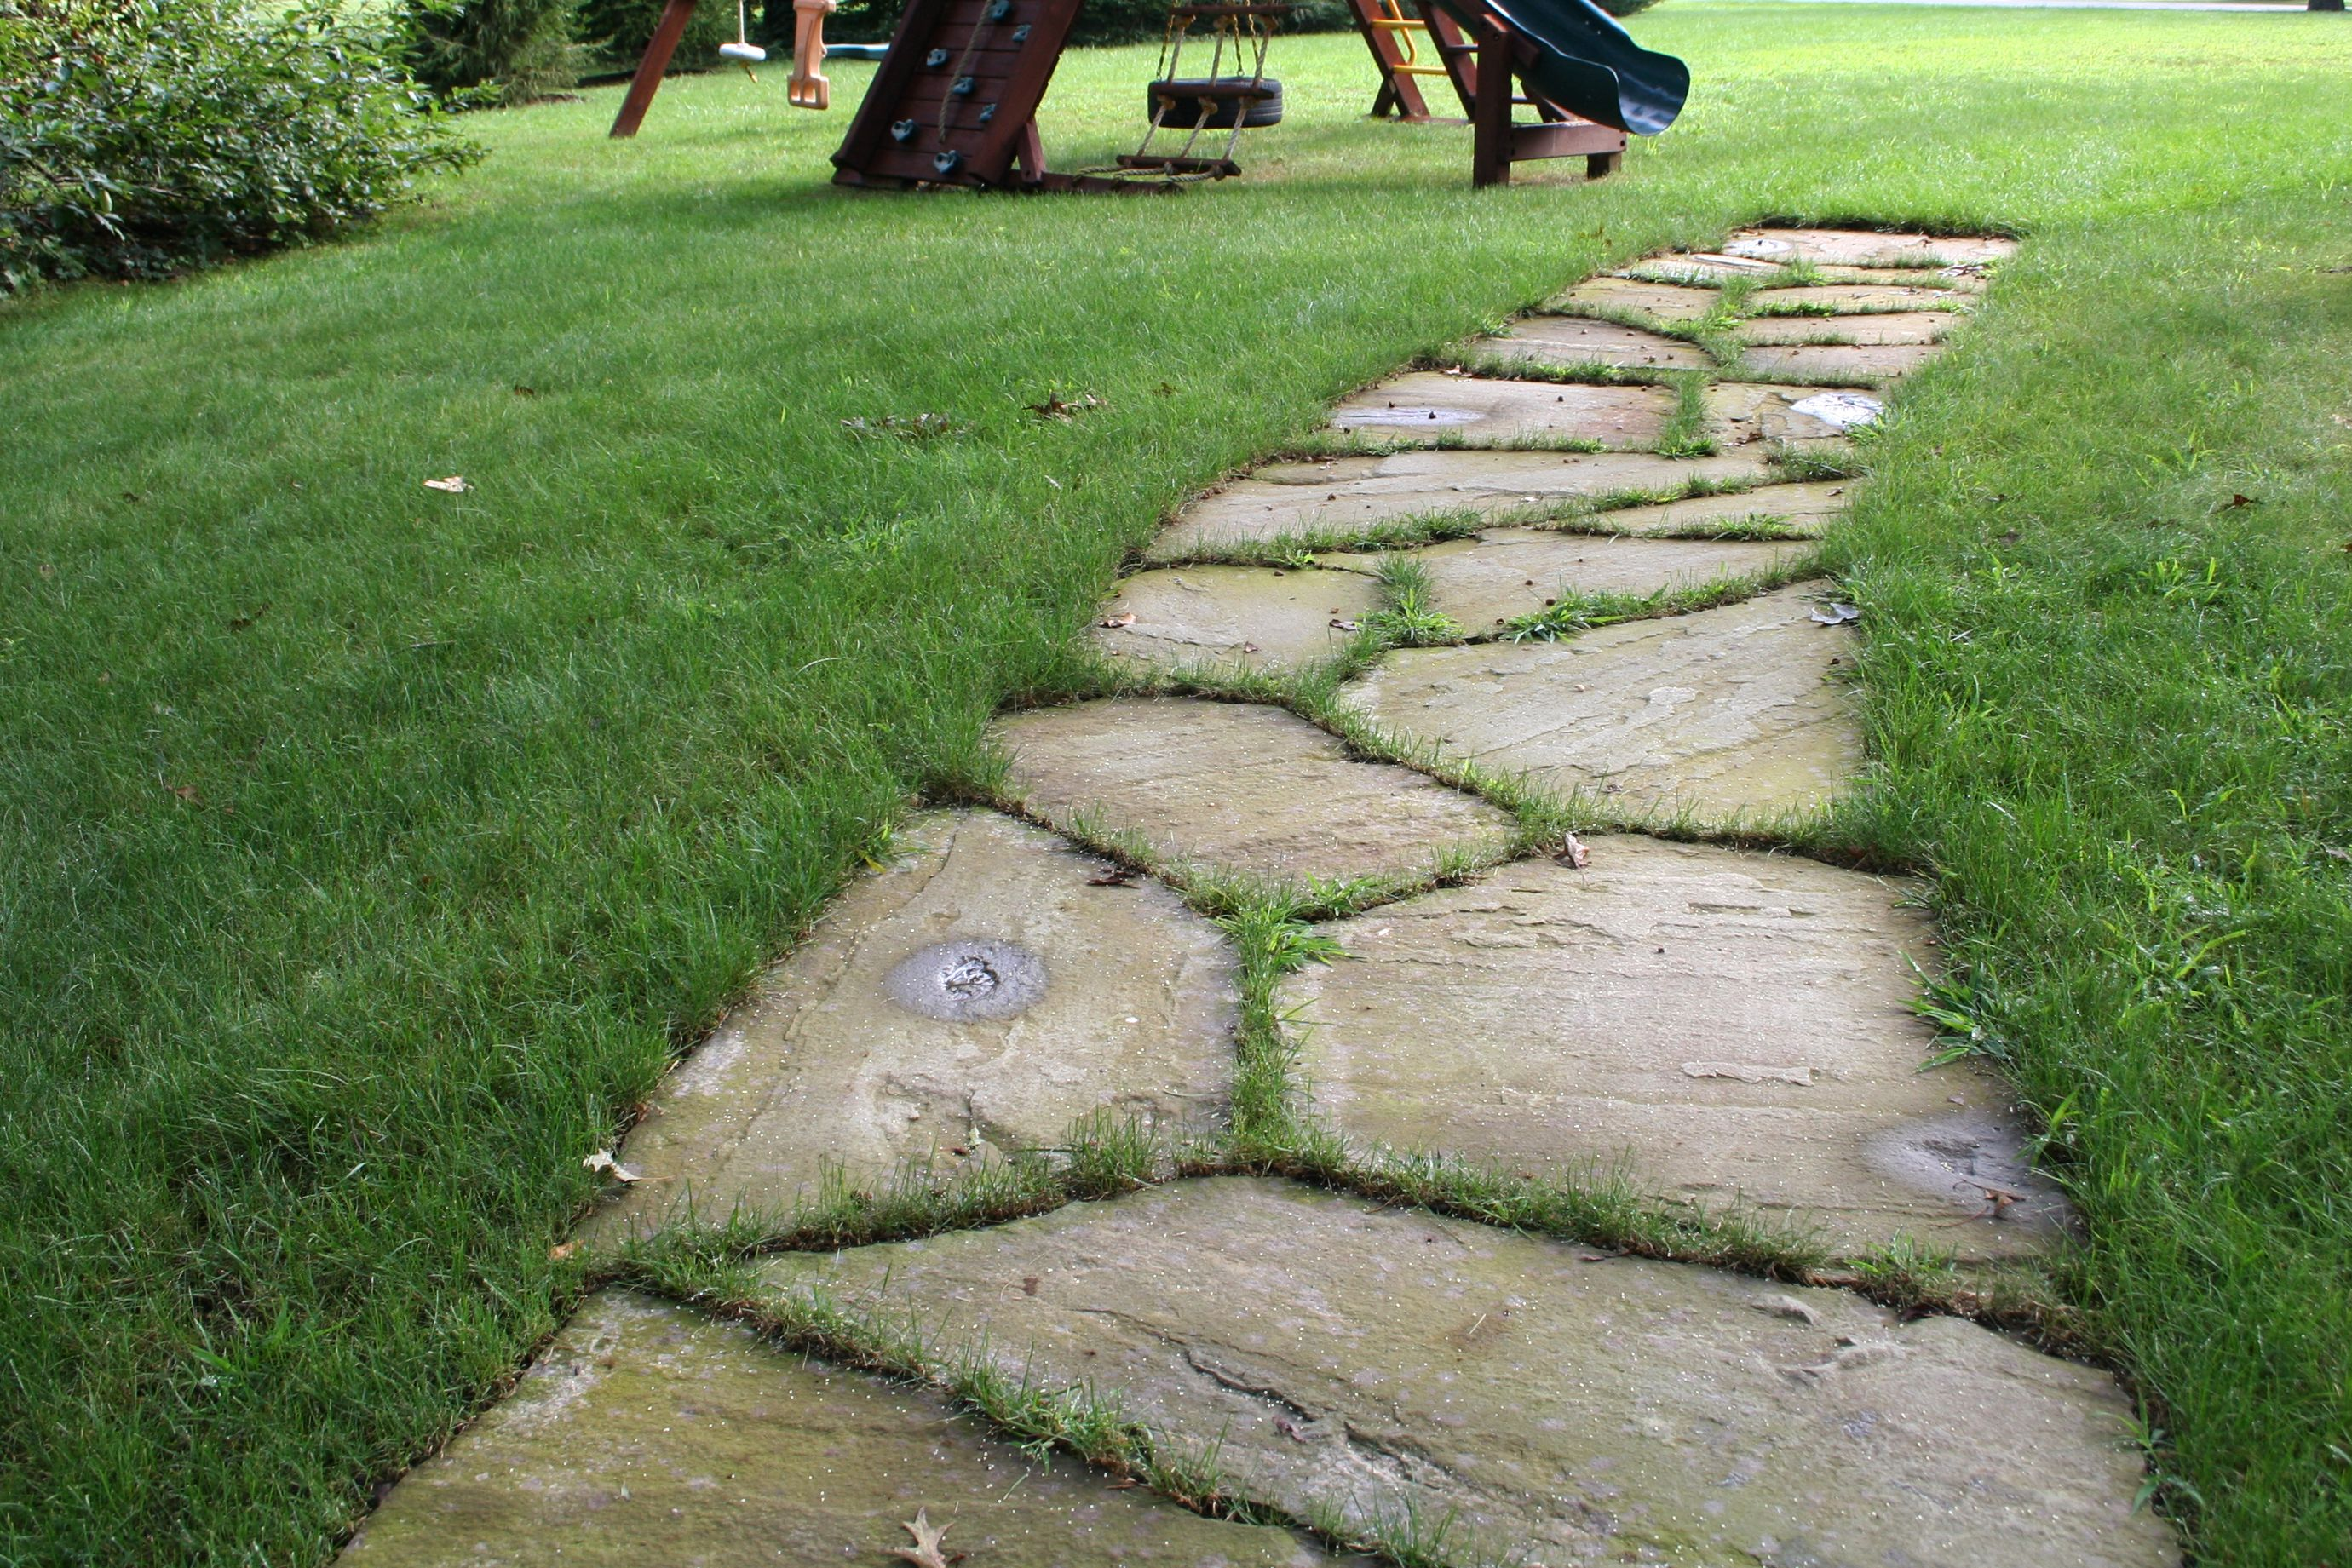 Enchanting Small Garden Landscape Ideas With Stepping Walk: Stone Stepping Stone Walkway Set In The Lawn